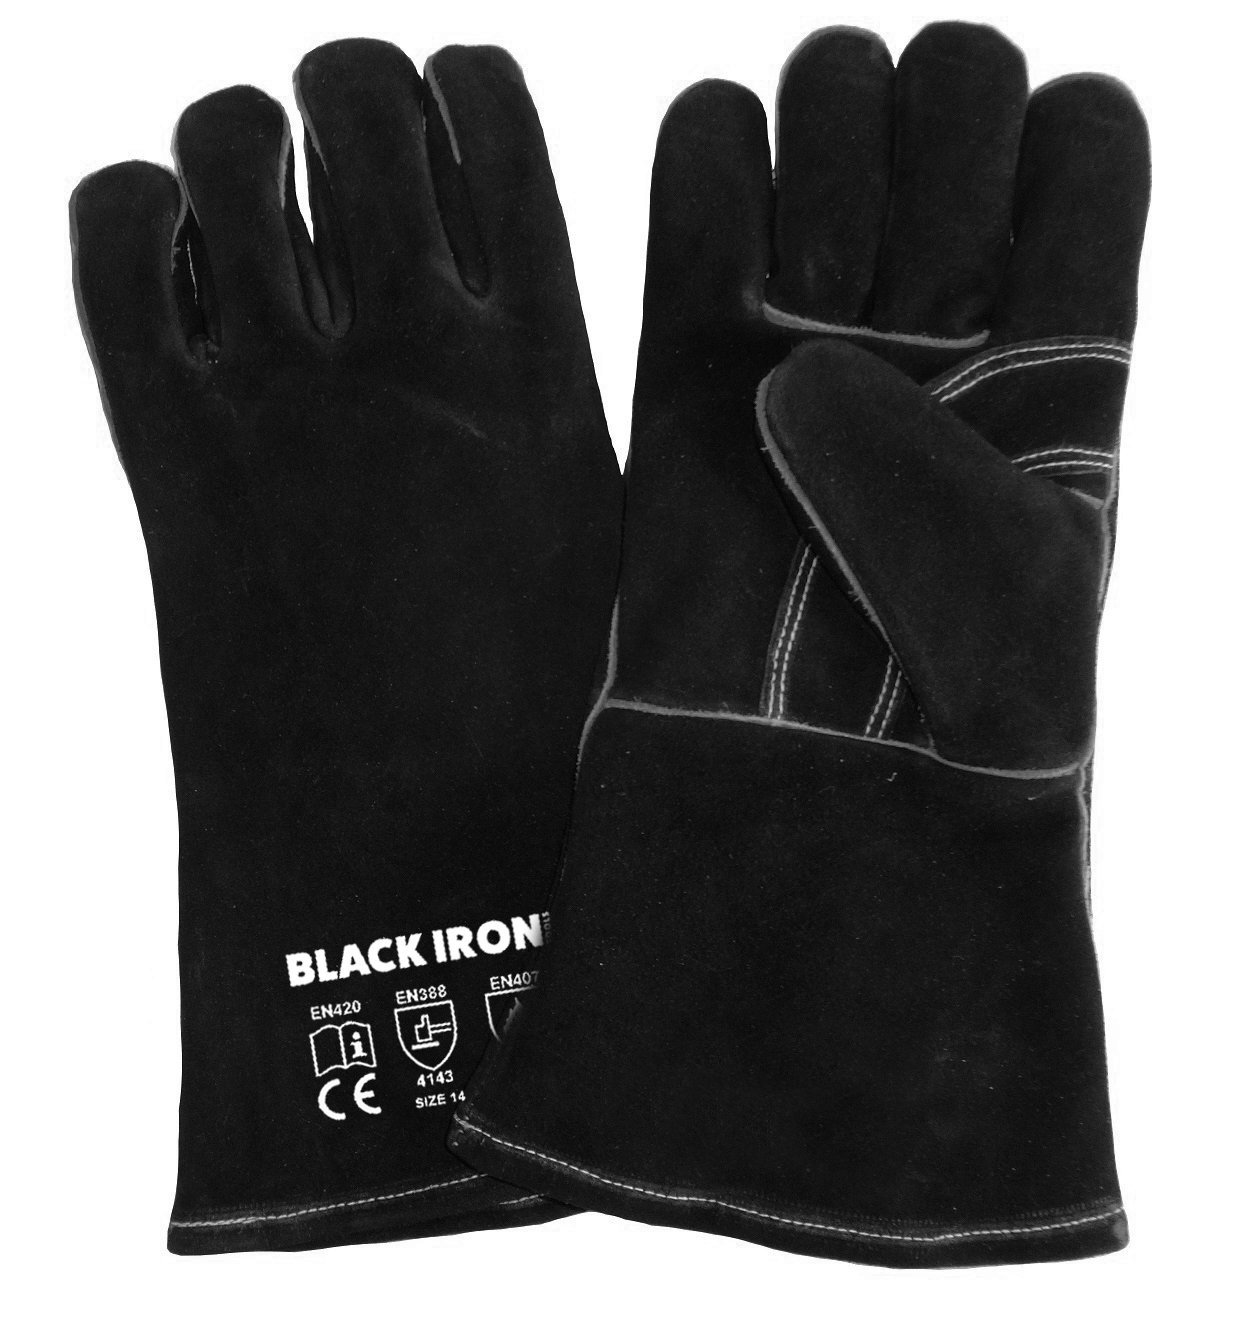 Top 9 Best Welding Gloves 2020 in Review